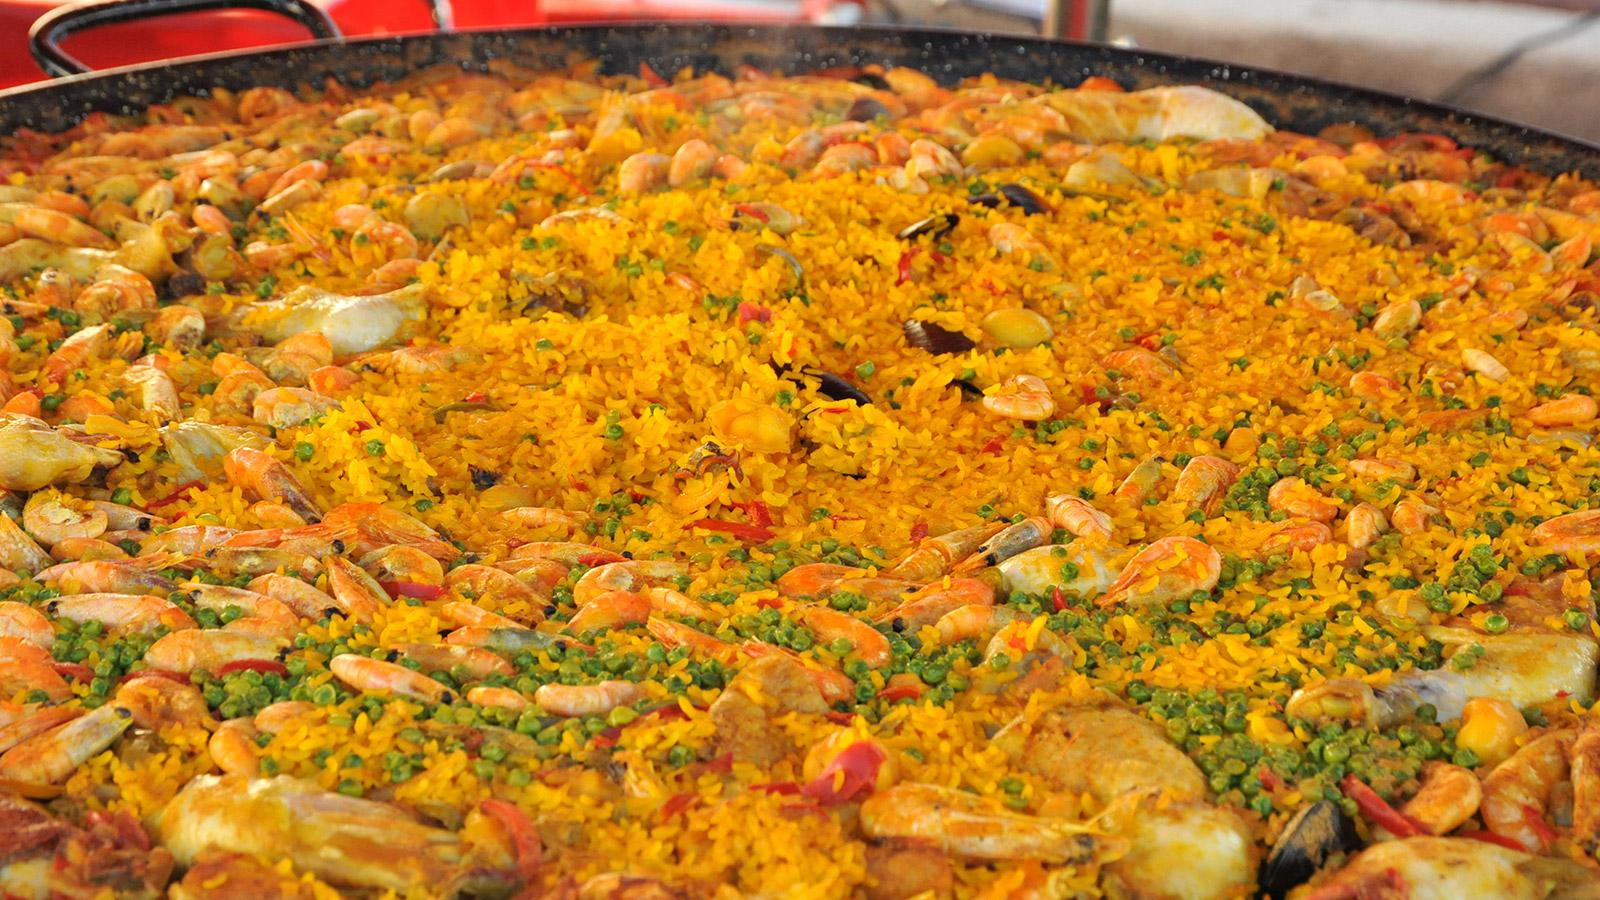 Primando sempre - Paella do Chico - Paella do Chico